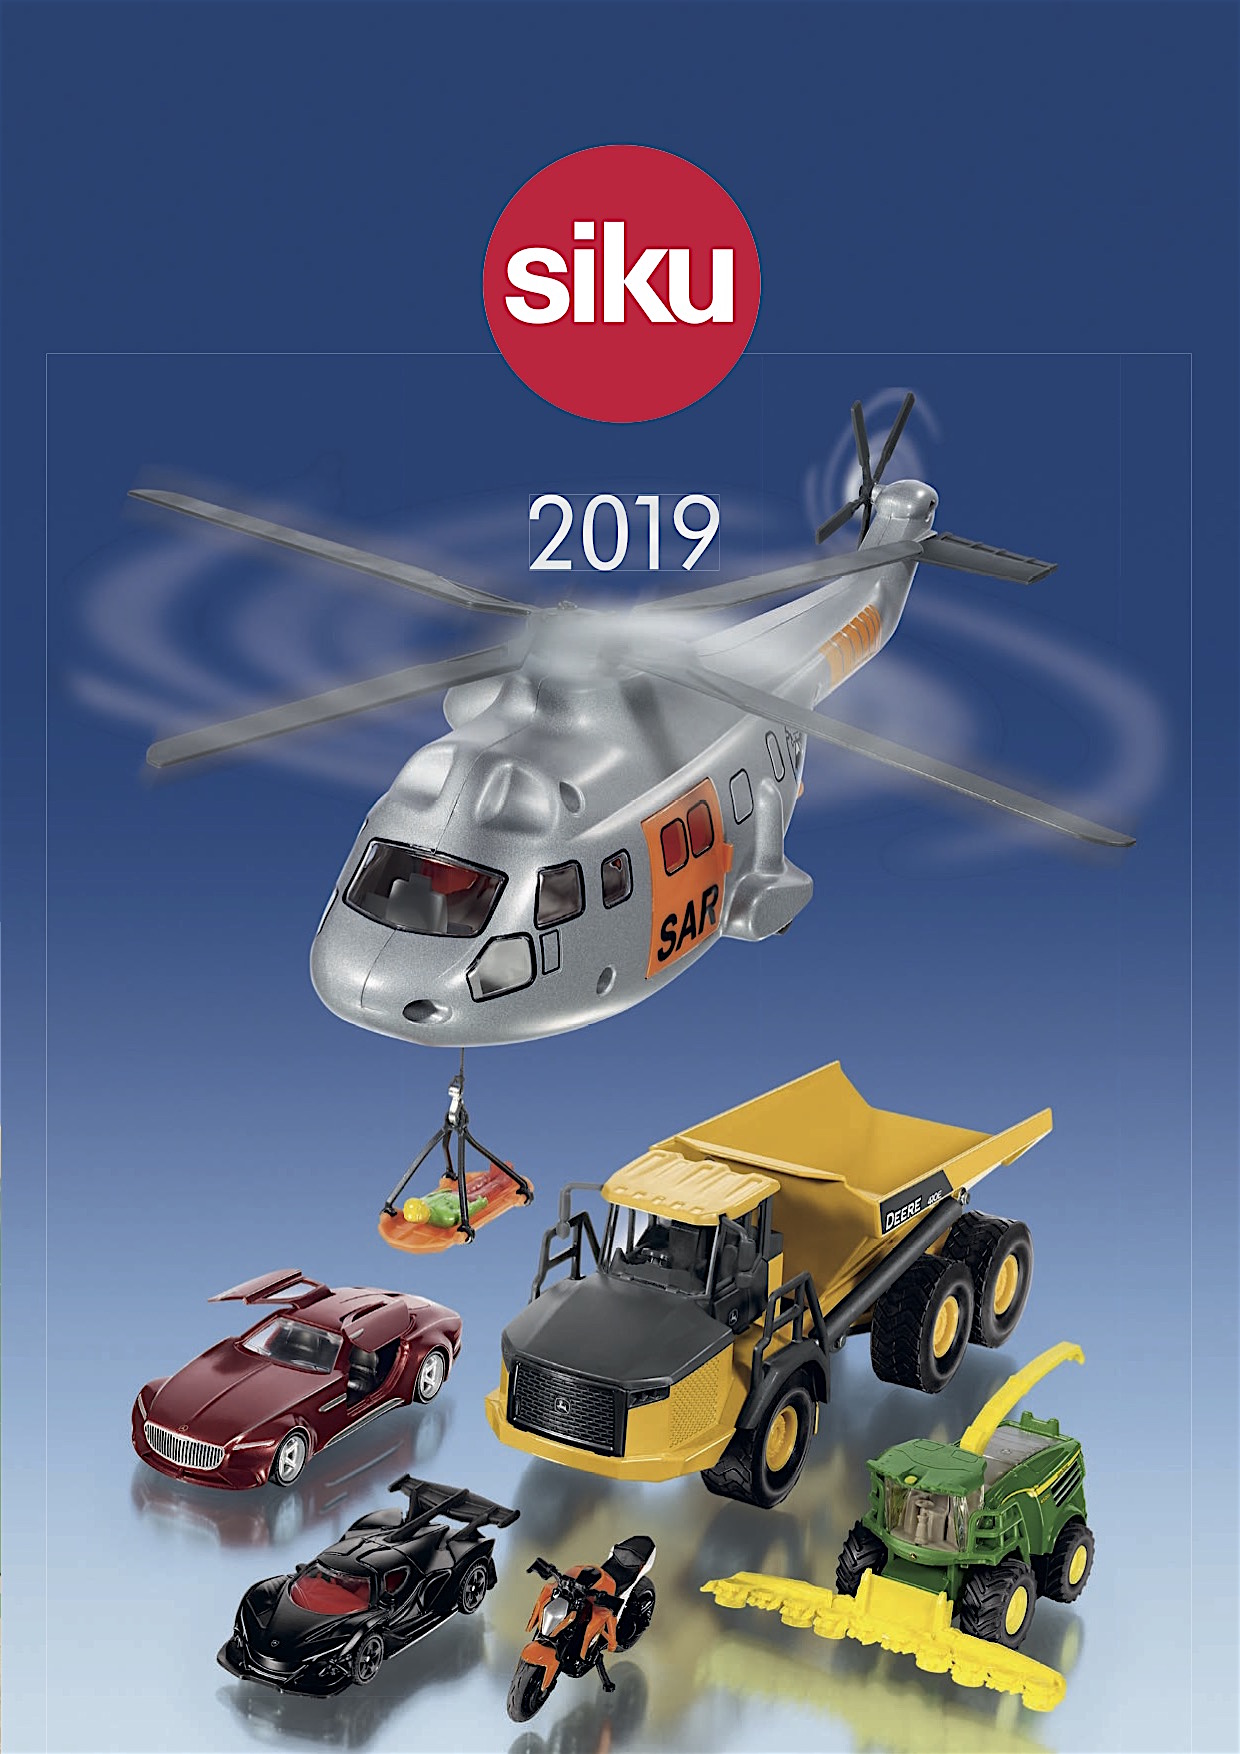 SIKU Katalog (Catalogue) 2019